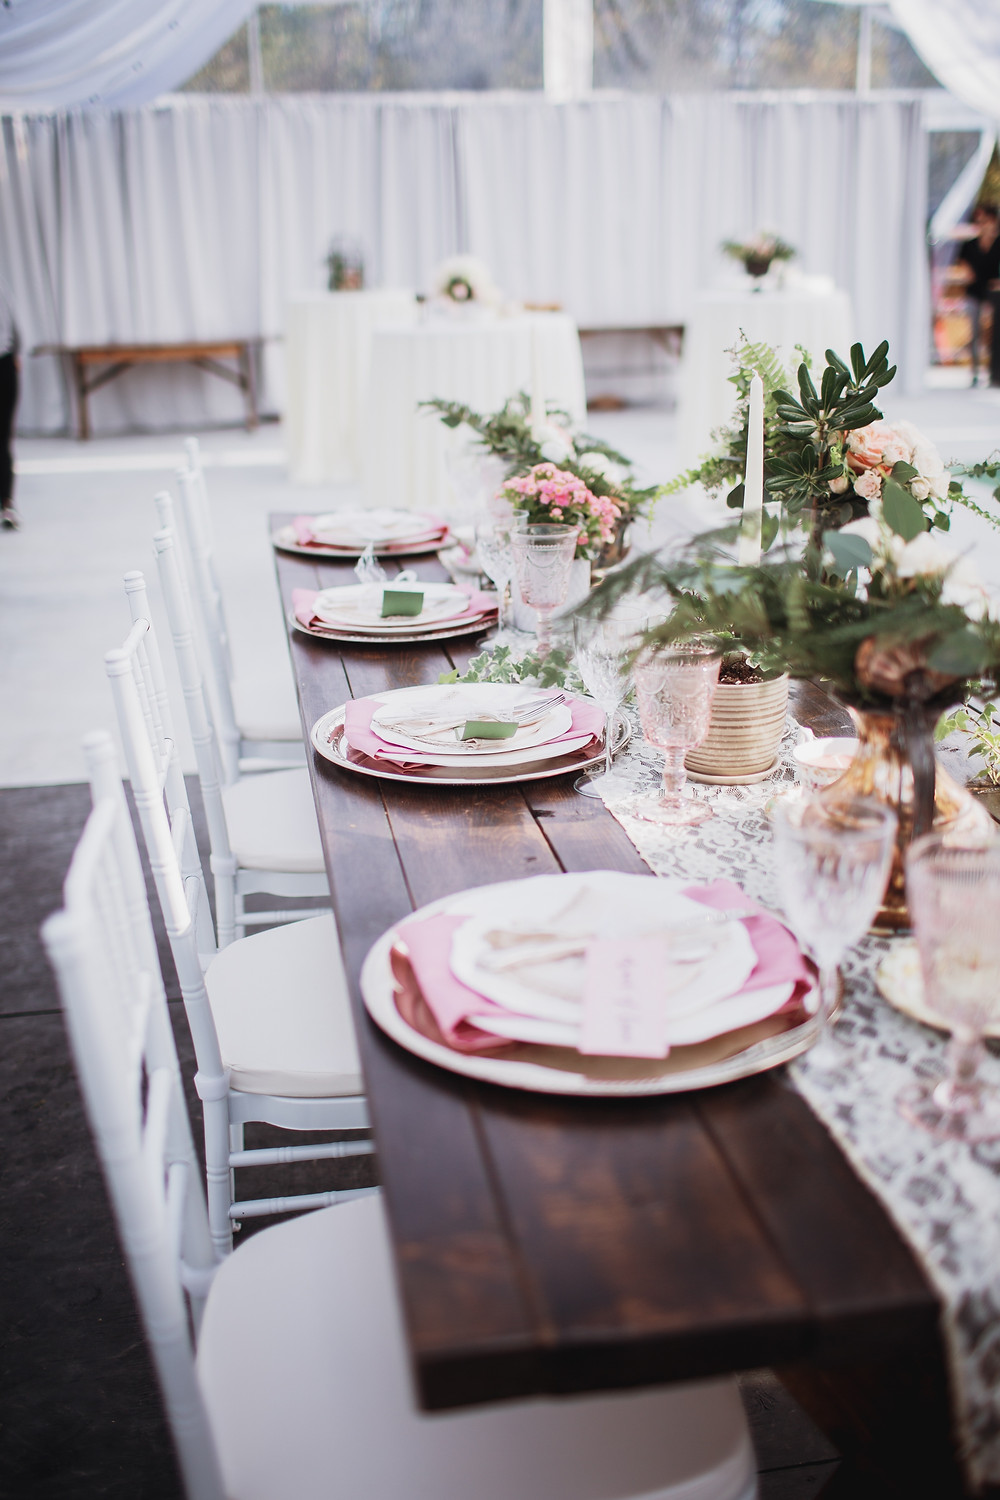 Wedding decor inspiration, secret garden wedding.